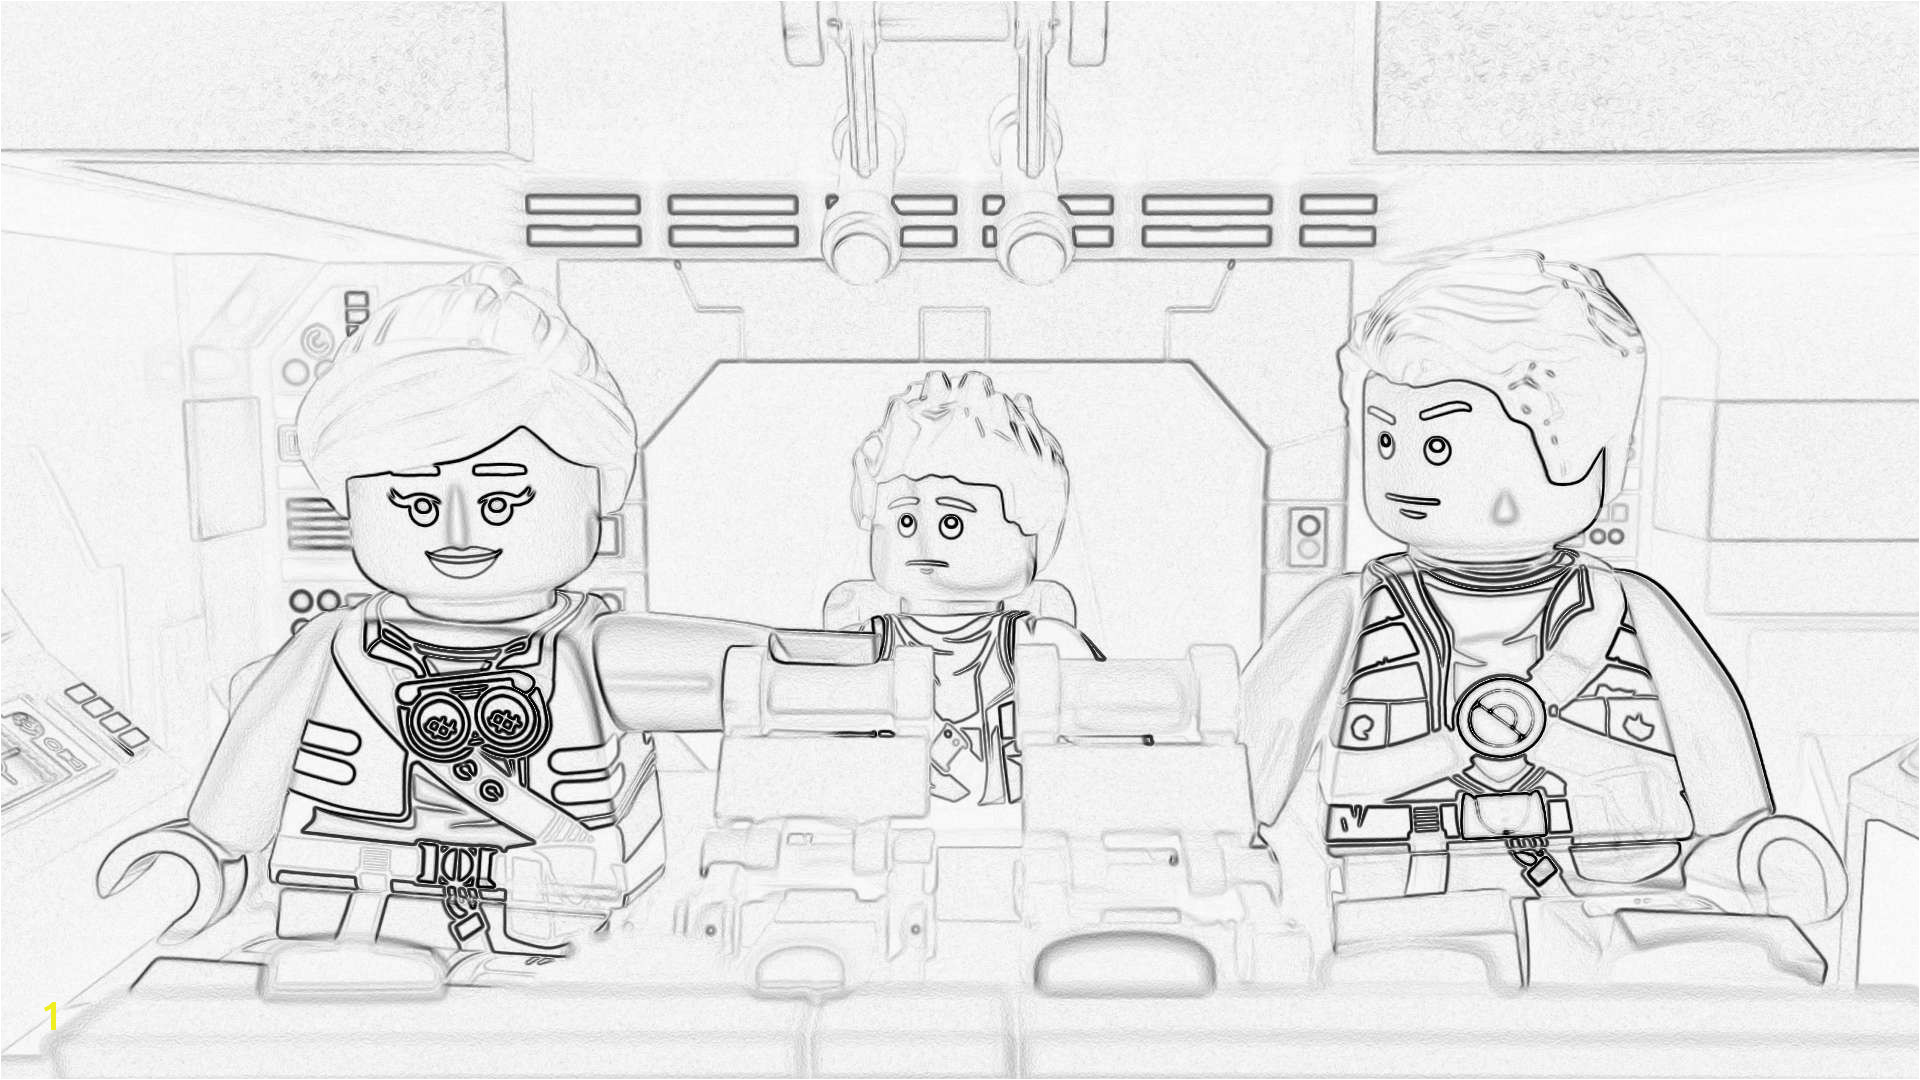 Ausmalbilder Lego Starwars Genial Lego Starwars Coloring Pages Christmas Coloring Pages Lego